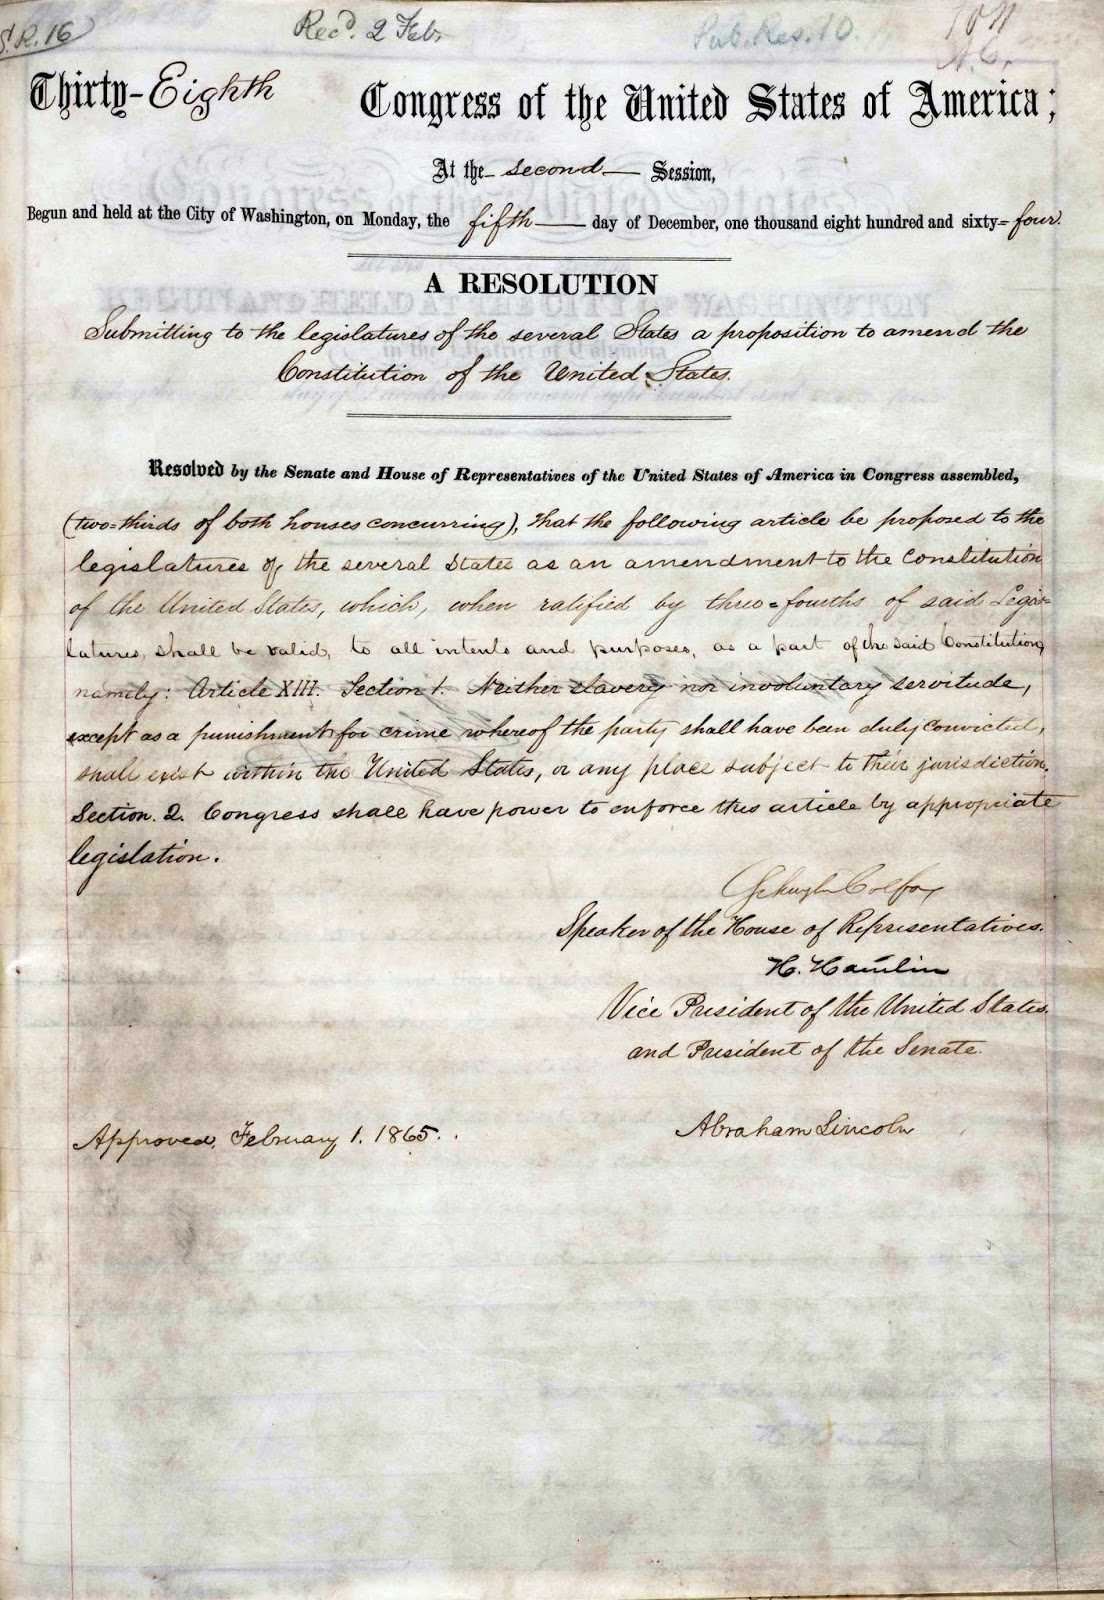 United States Constitution and Citizenship Day: 13th Amendment